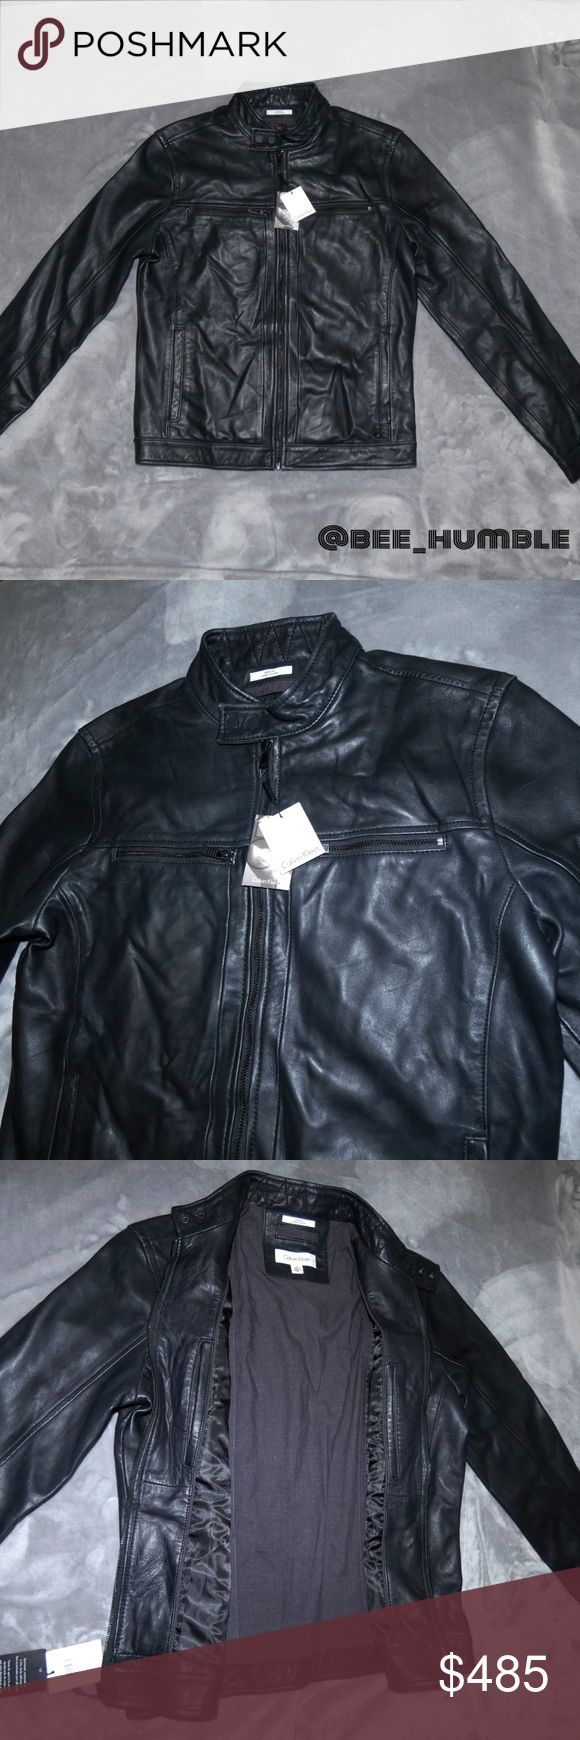 NWT CALVIN KLEIN Moto Leather Jacket Perfect brand NEW condition. Never Worn.  Soft buttery black leather. Slightly distressed. Look will only get better with time. A stylish staple piece.   Questions & reasonable offers welcome.   BUNDLE for best savings Calvin Klein Jackets & Coats Performance Jackets